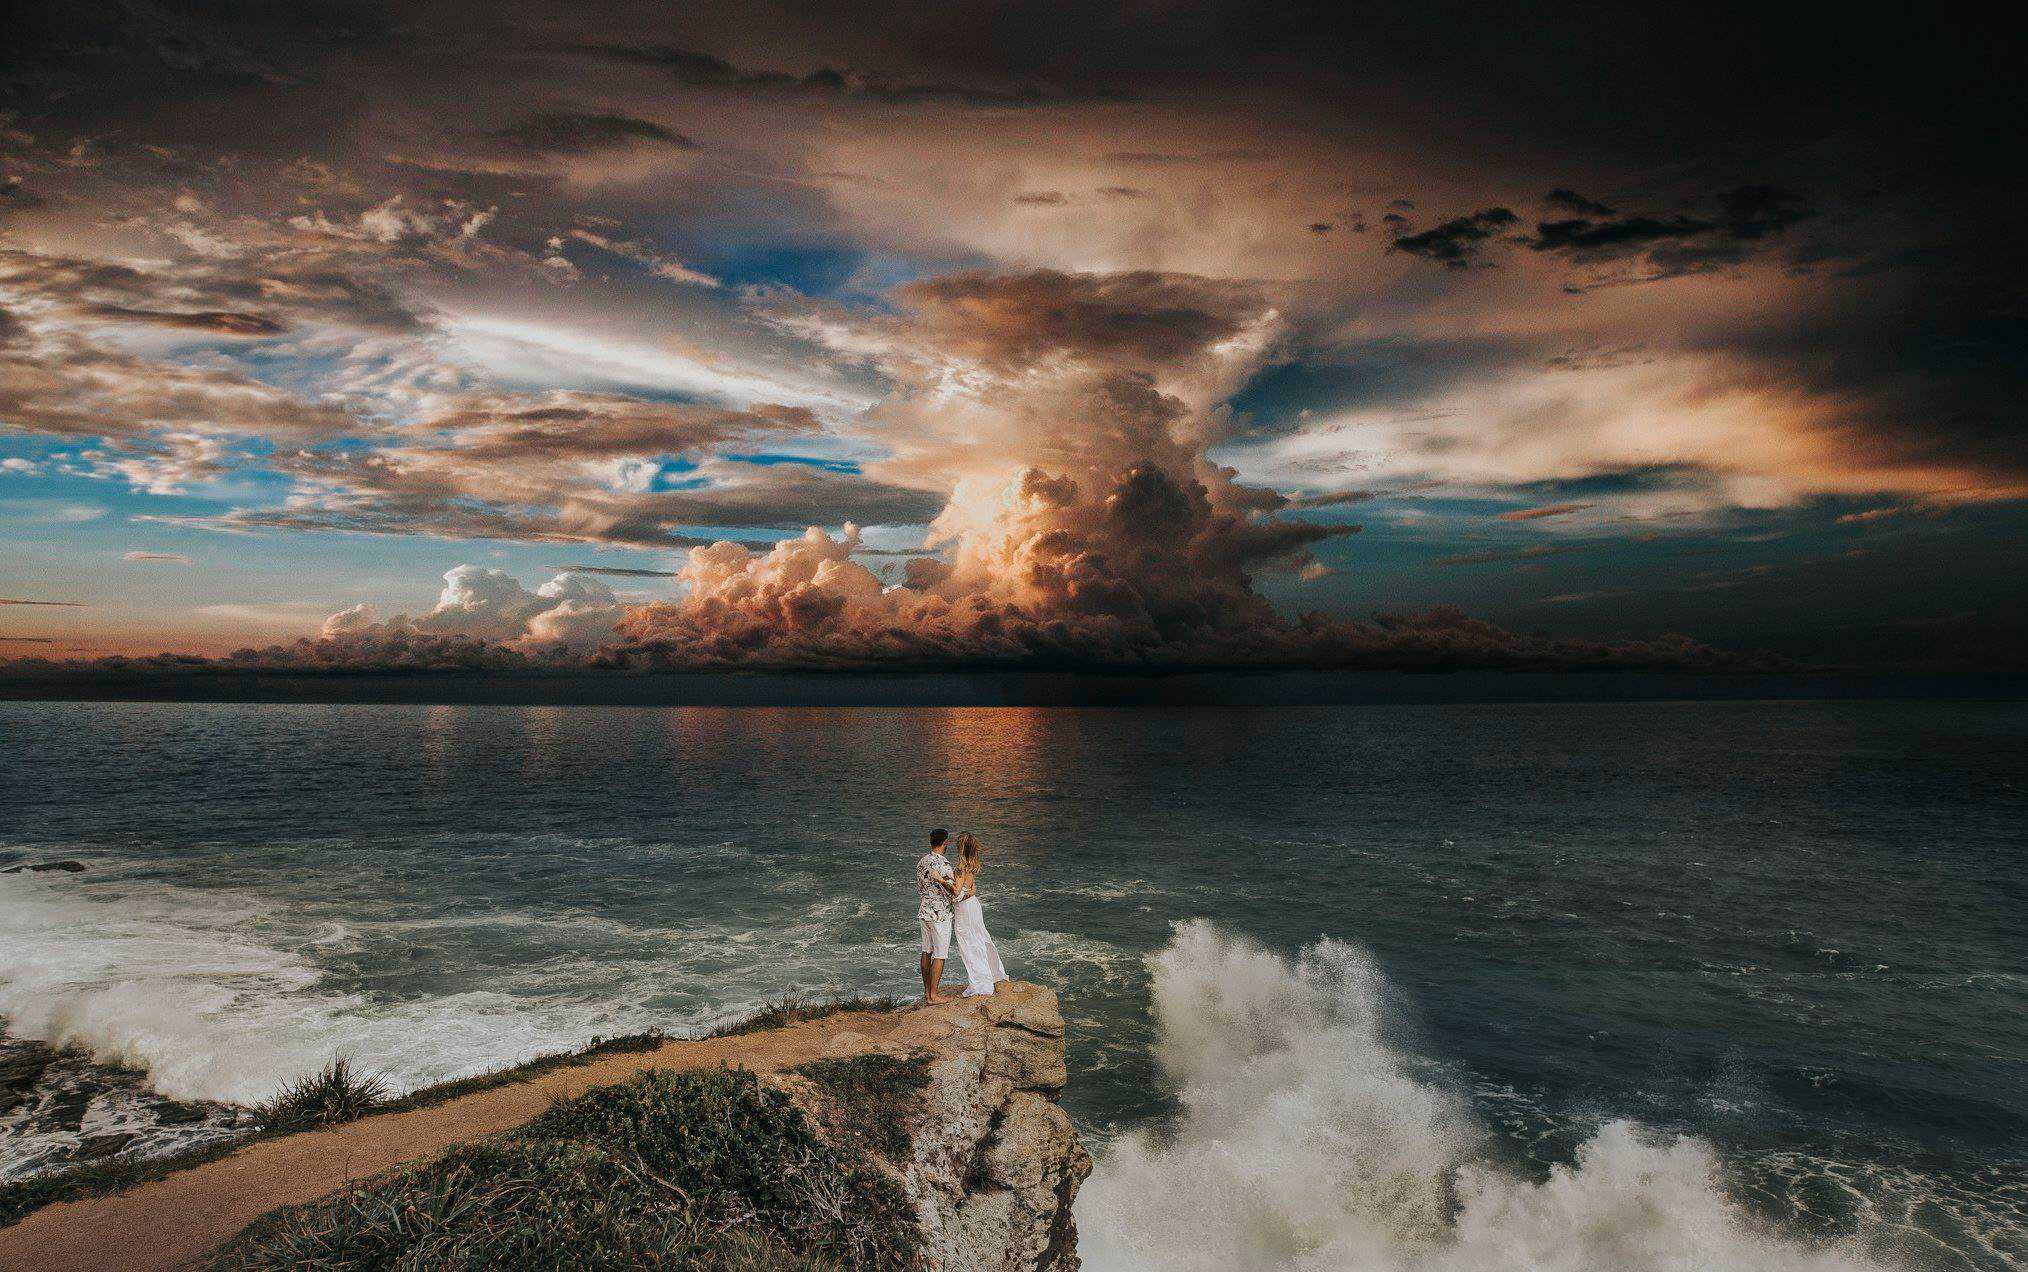 Man and a Woman standing on a cliff watching a storm